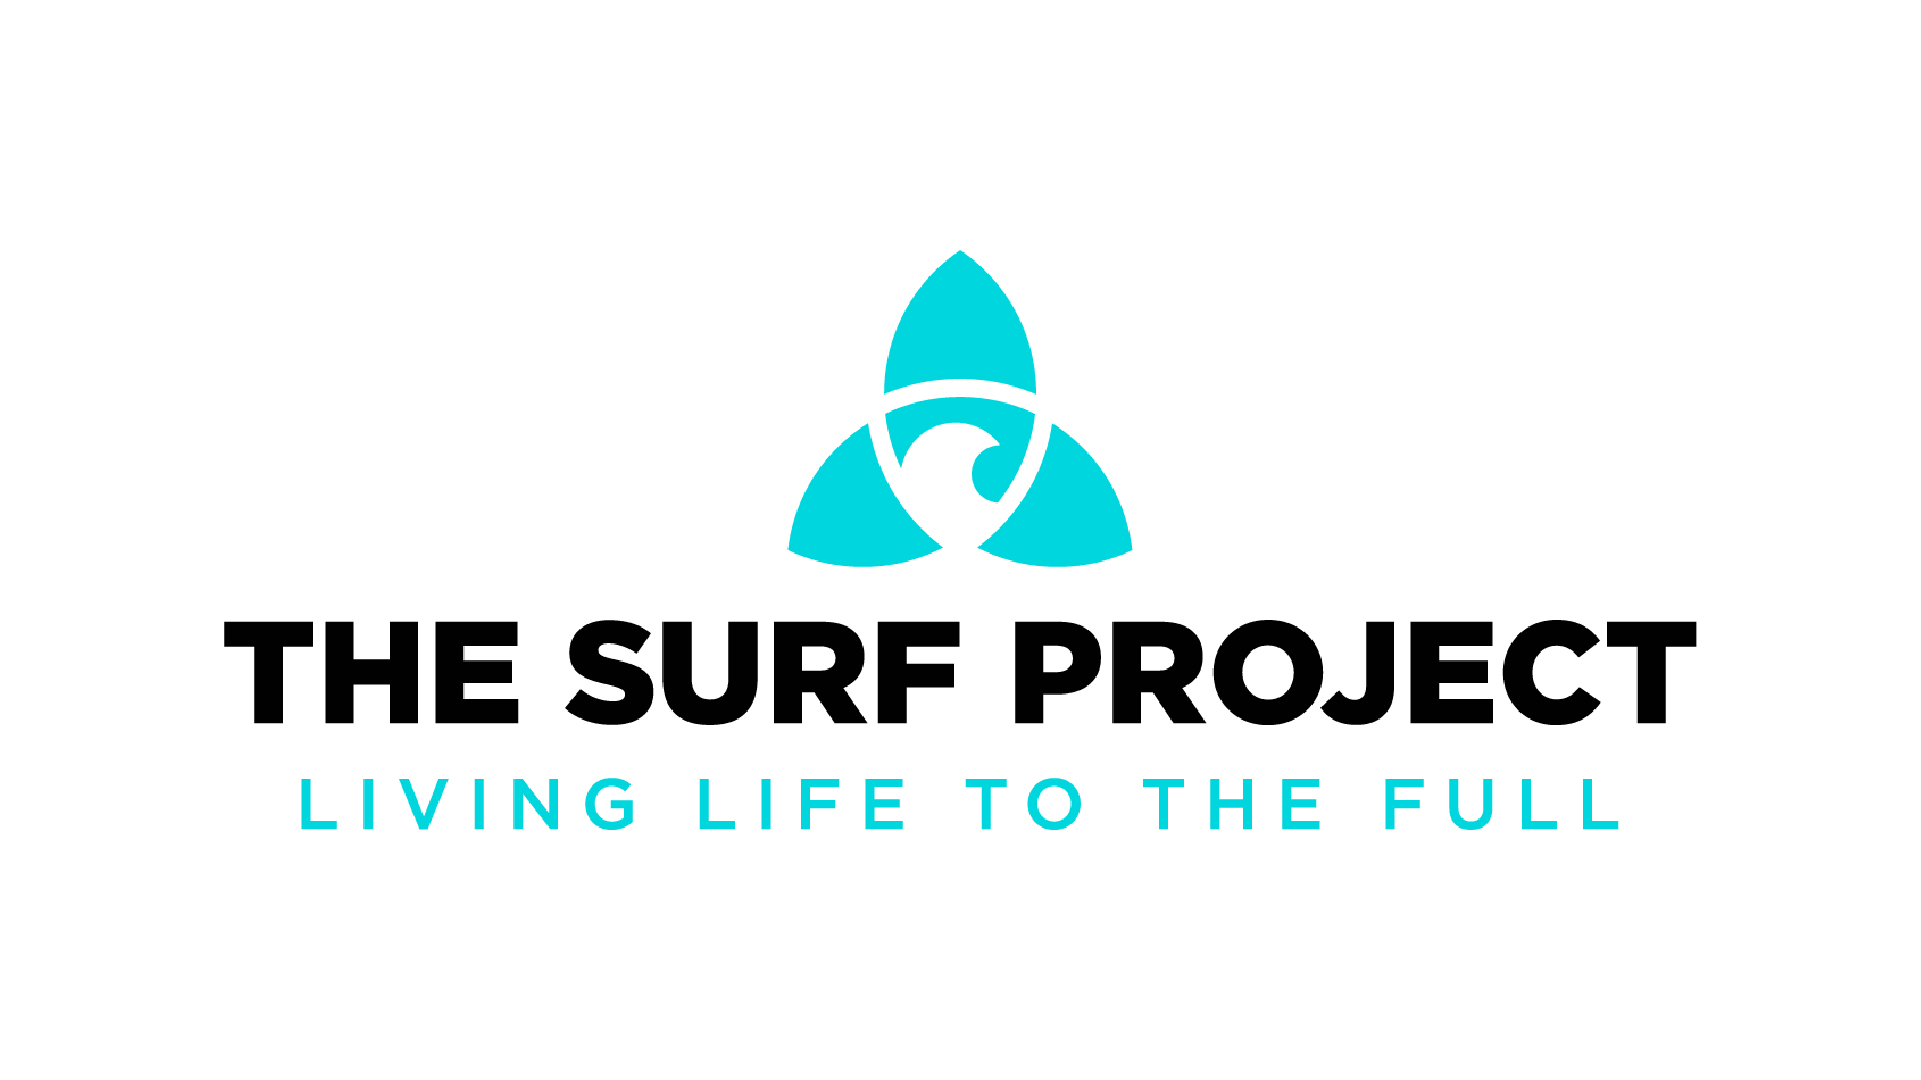 The Surf Project Expands Its Community Outreach with Glue Up's All-In-One Event Management Software